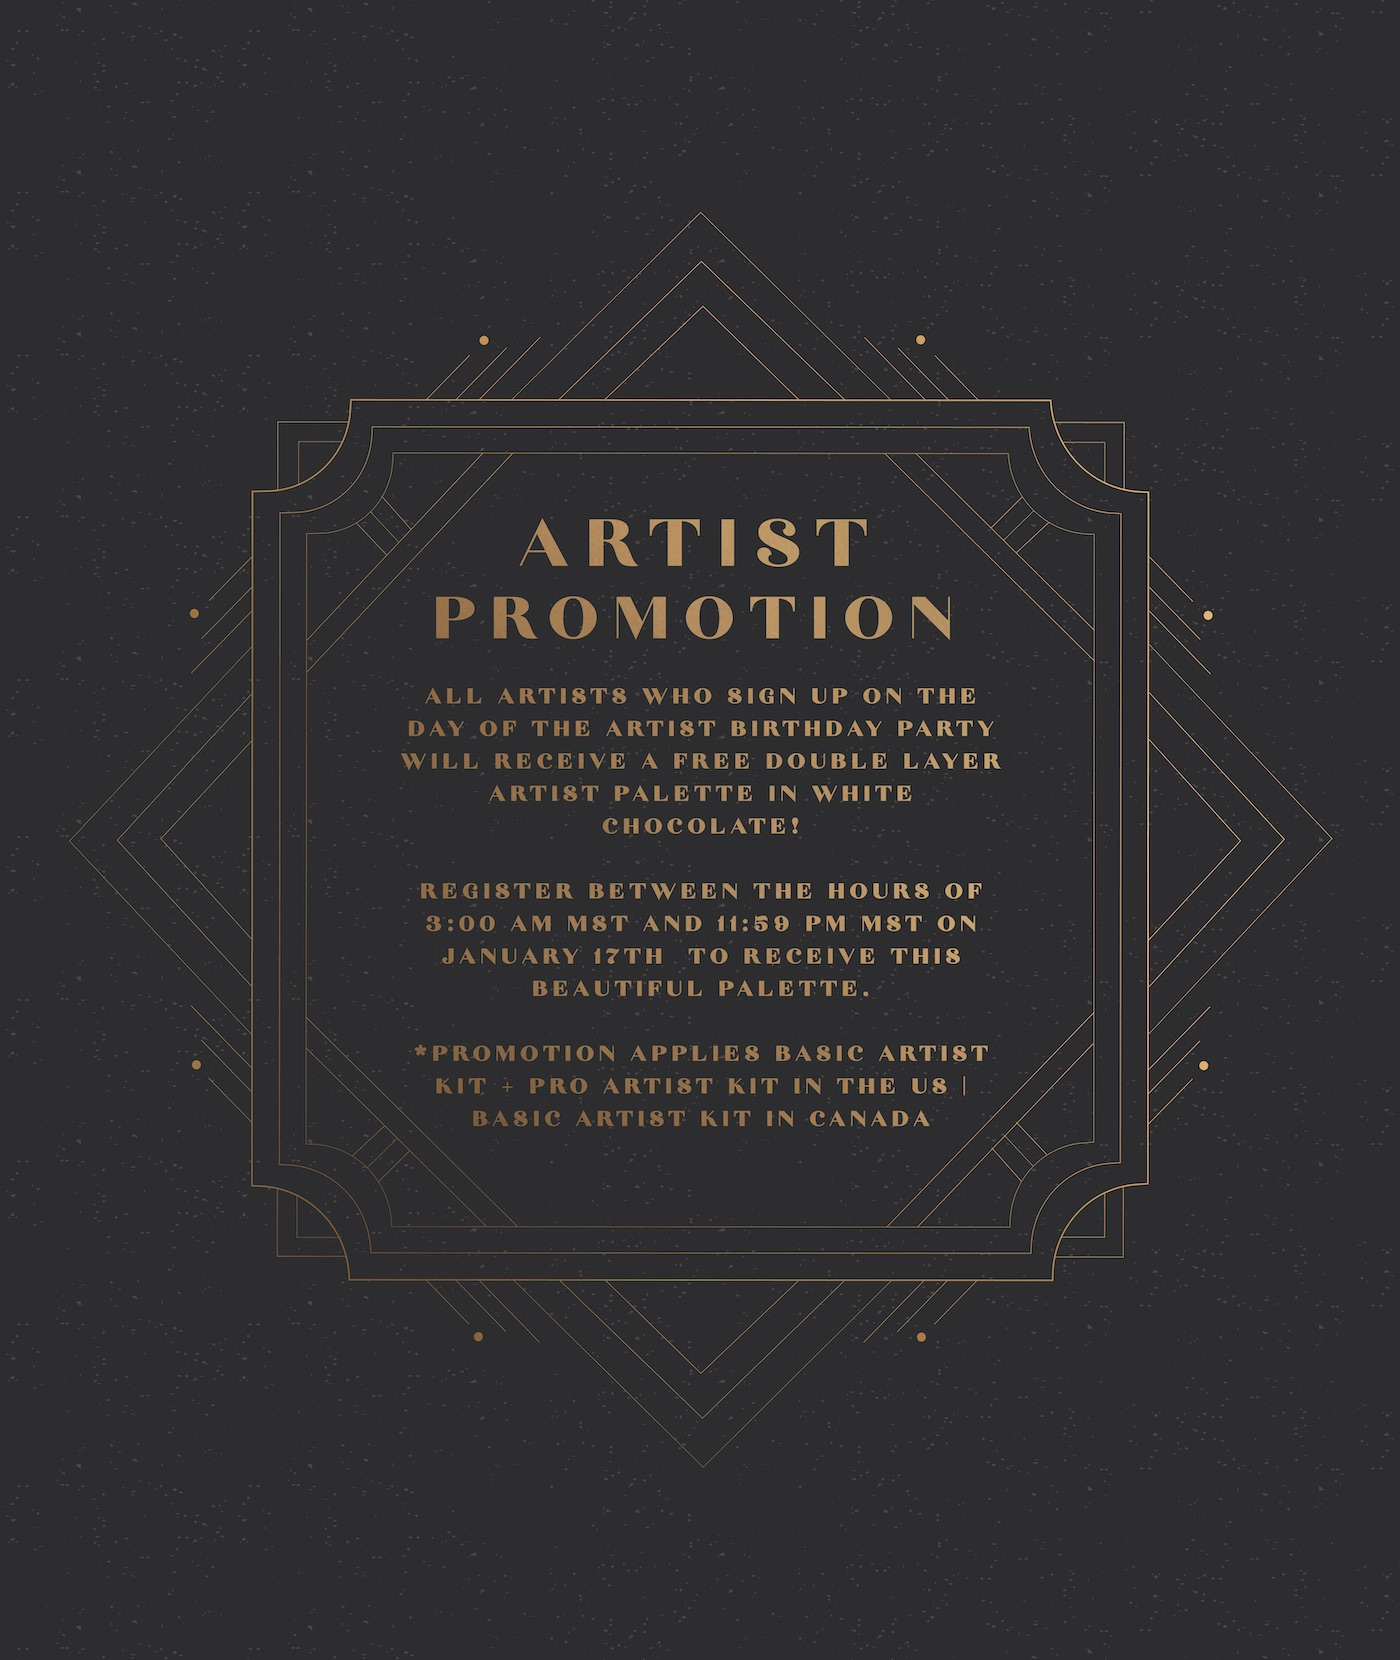 ABPIGFeedArtistpromotion-04